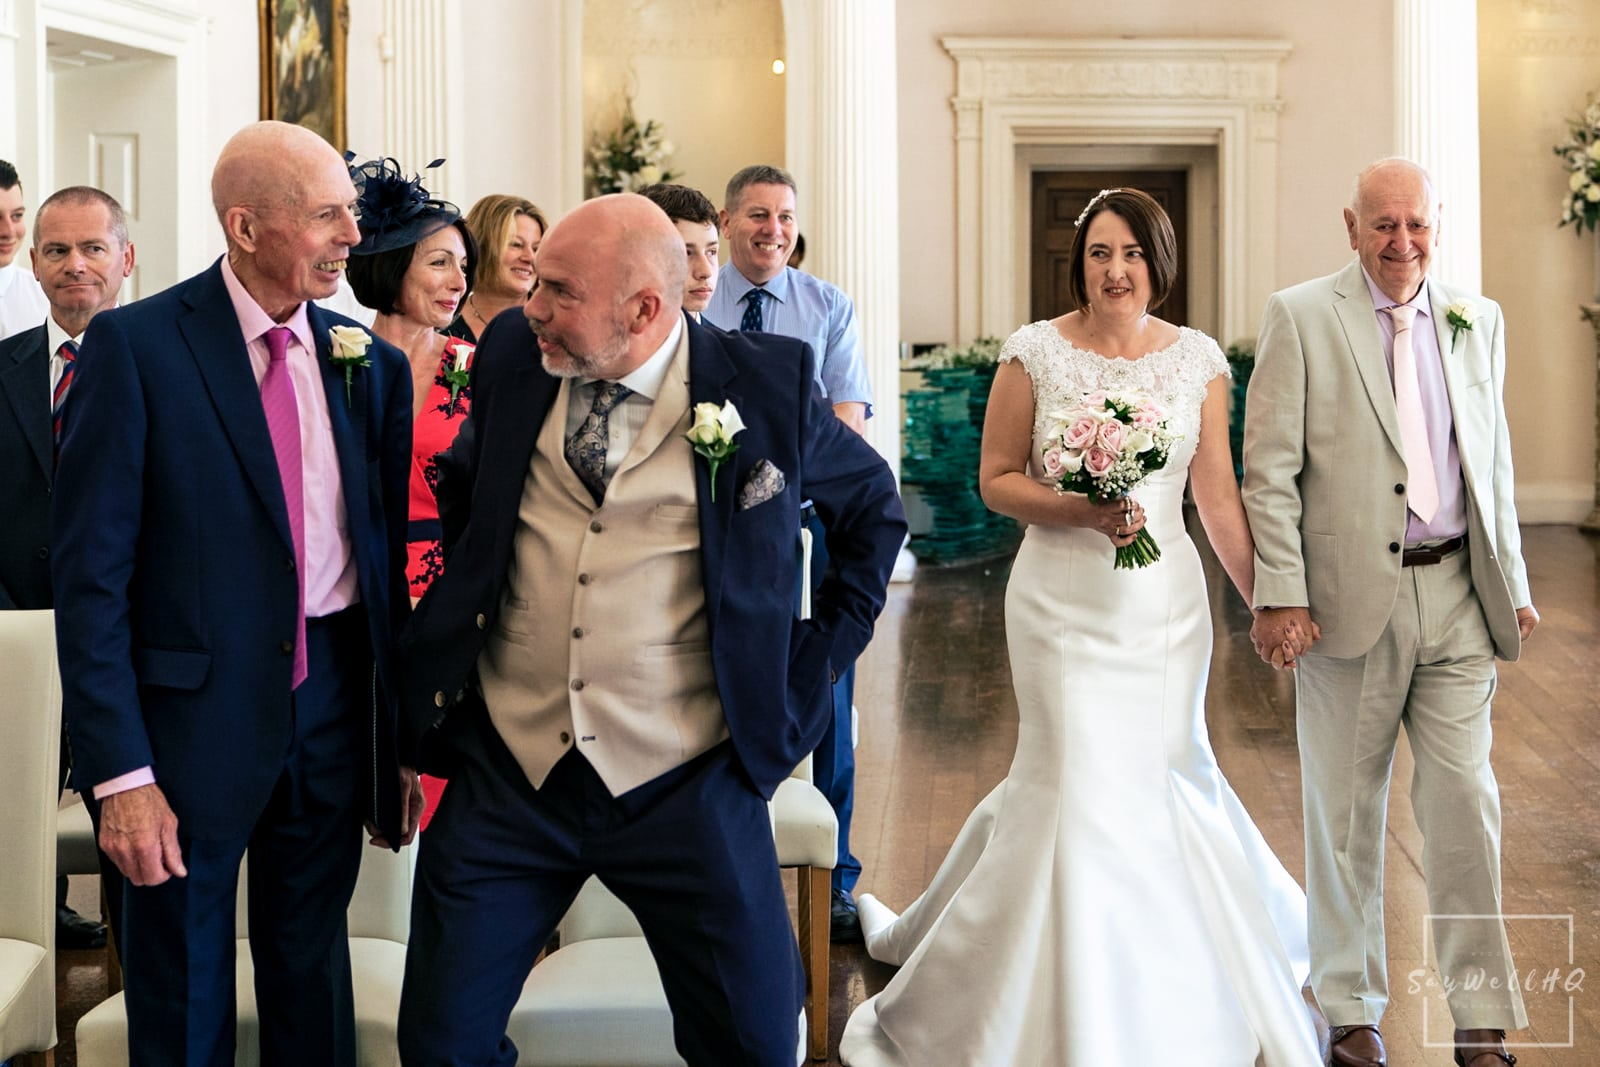 Colwick Hall Wedding Photography + Colwick Hall Wedding Photographer + groom adjusts his trousers just as the bride and her father start walking down the wedding aisle